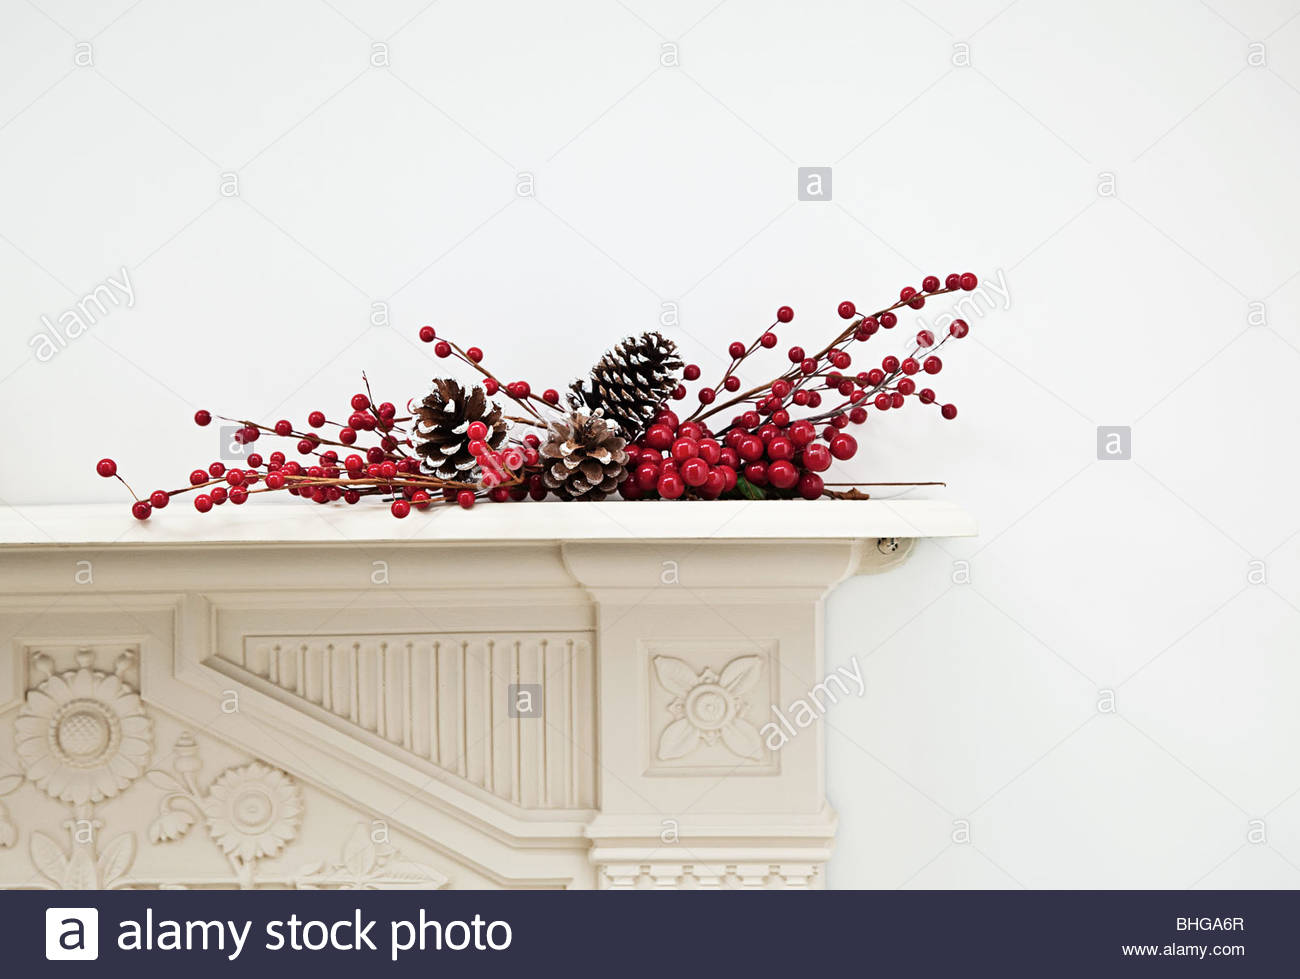 Festive display on mantlepiece - Stock Image